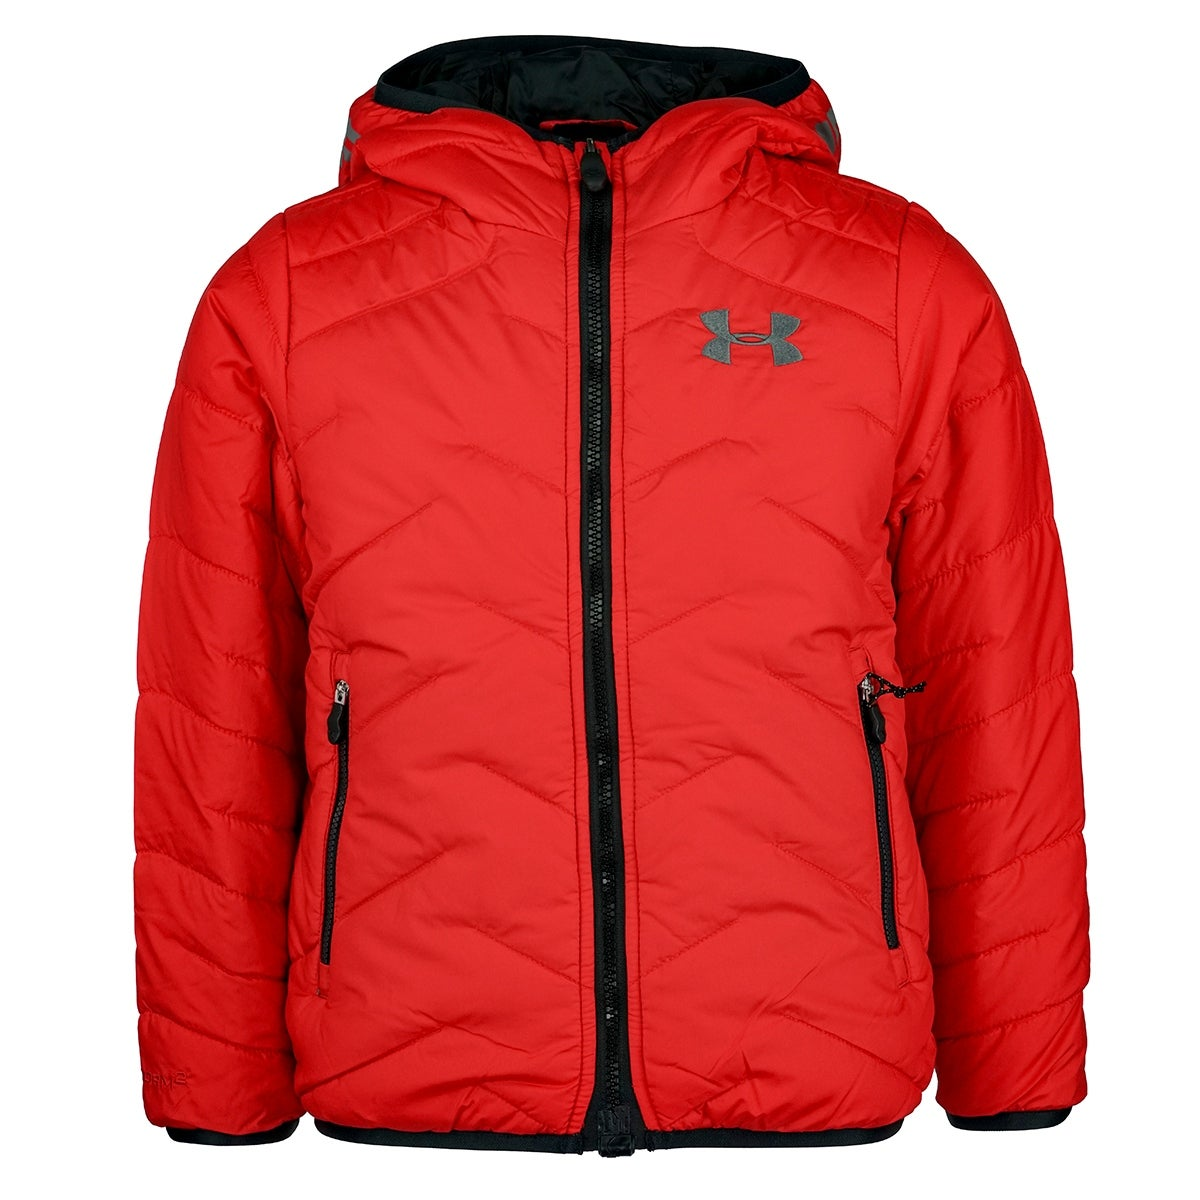 a439e8e72 Shop Under Armour Boys' Coldgear Reactor Hooded Jacket - red/graphite/black  - XS - Free Shipping Today - Overstock - 23528393